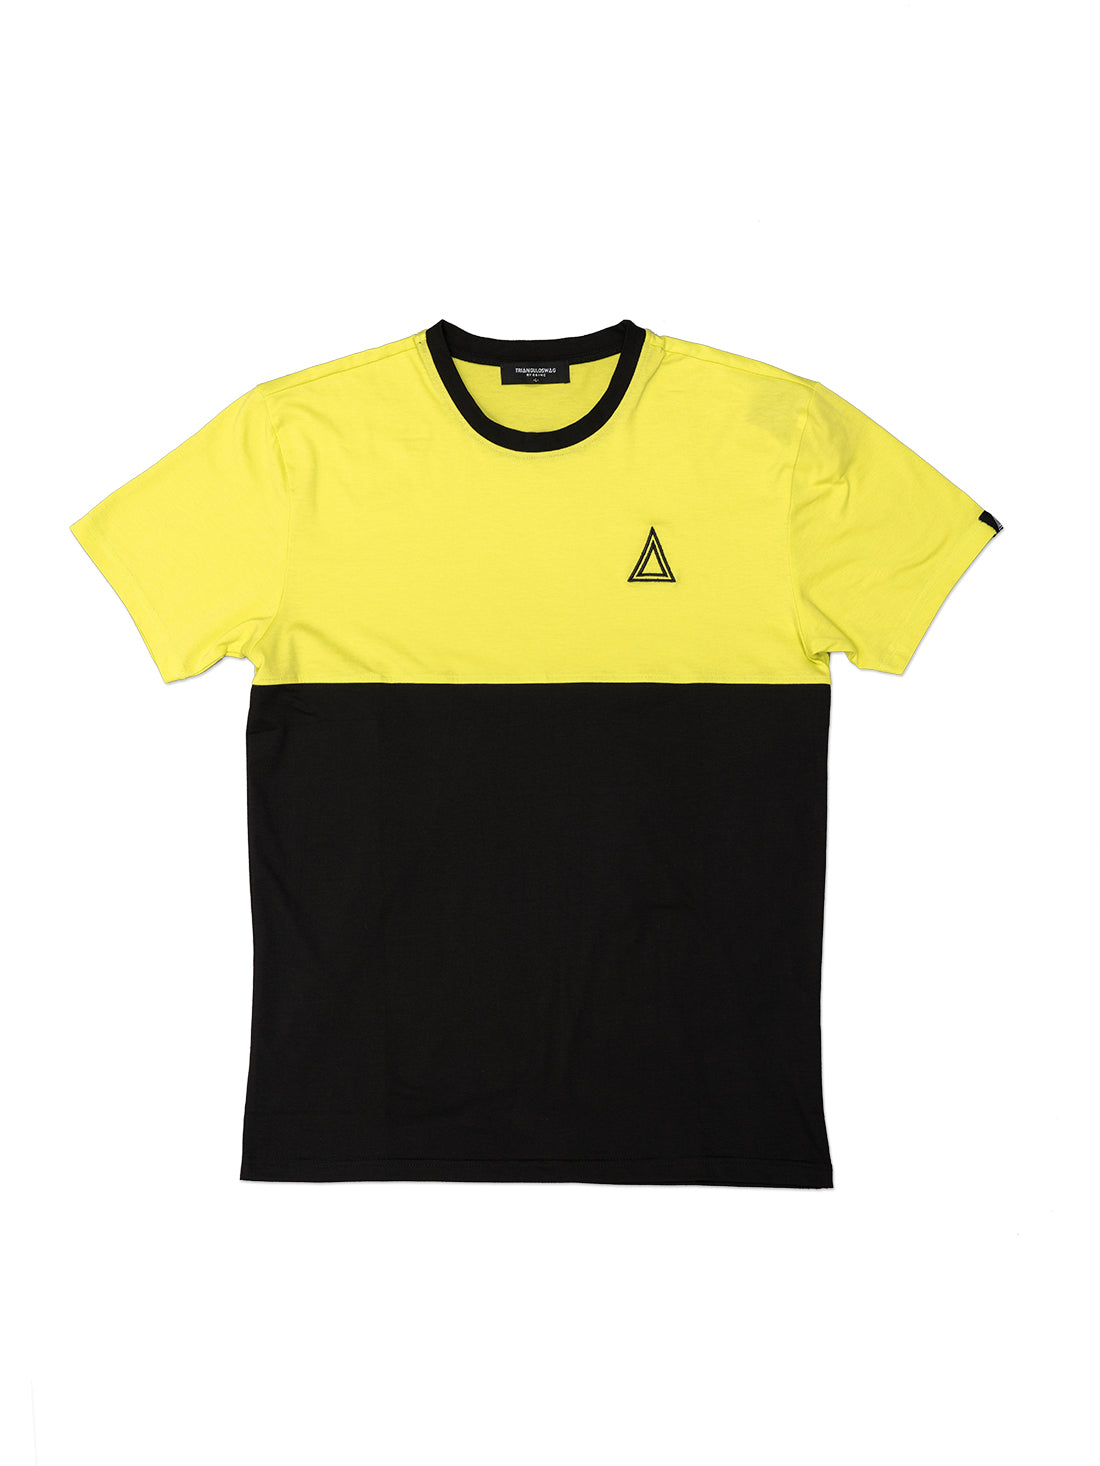 2 Tone NEON YELLOW Tshirt - Triangulo Swag